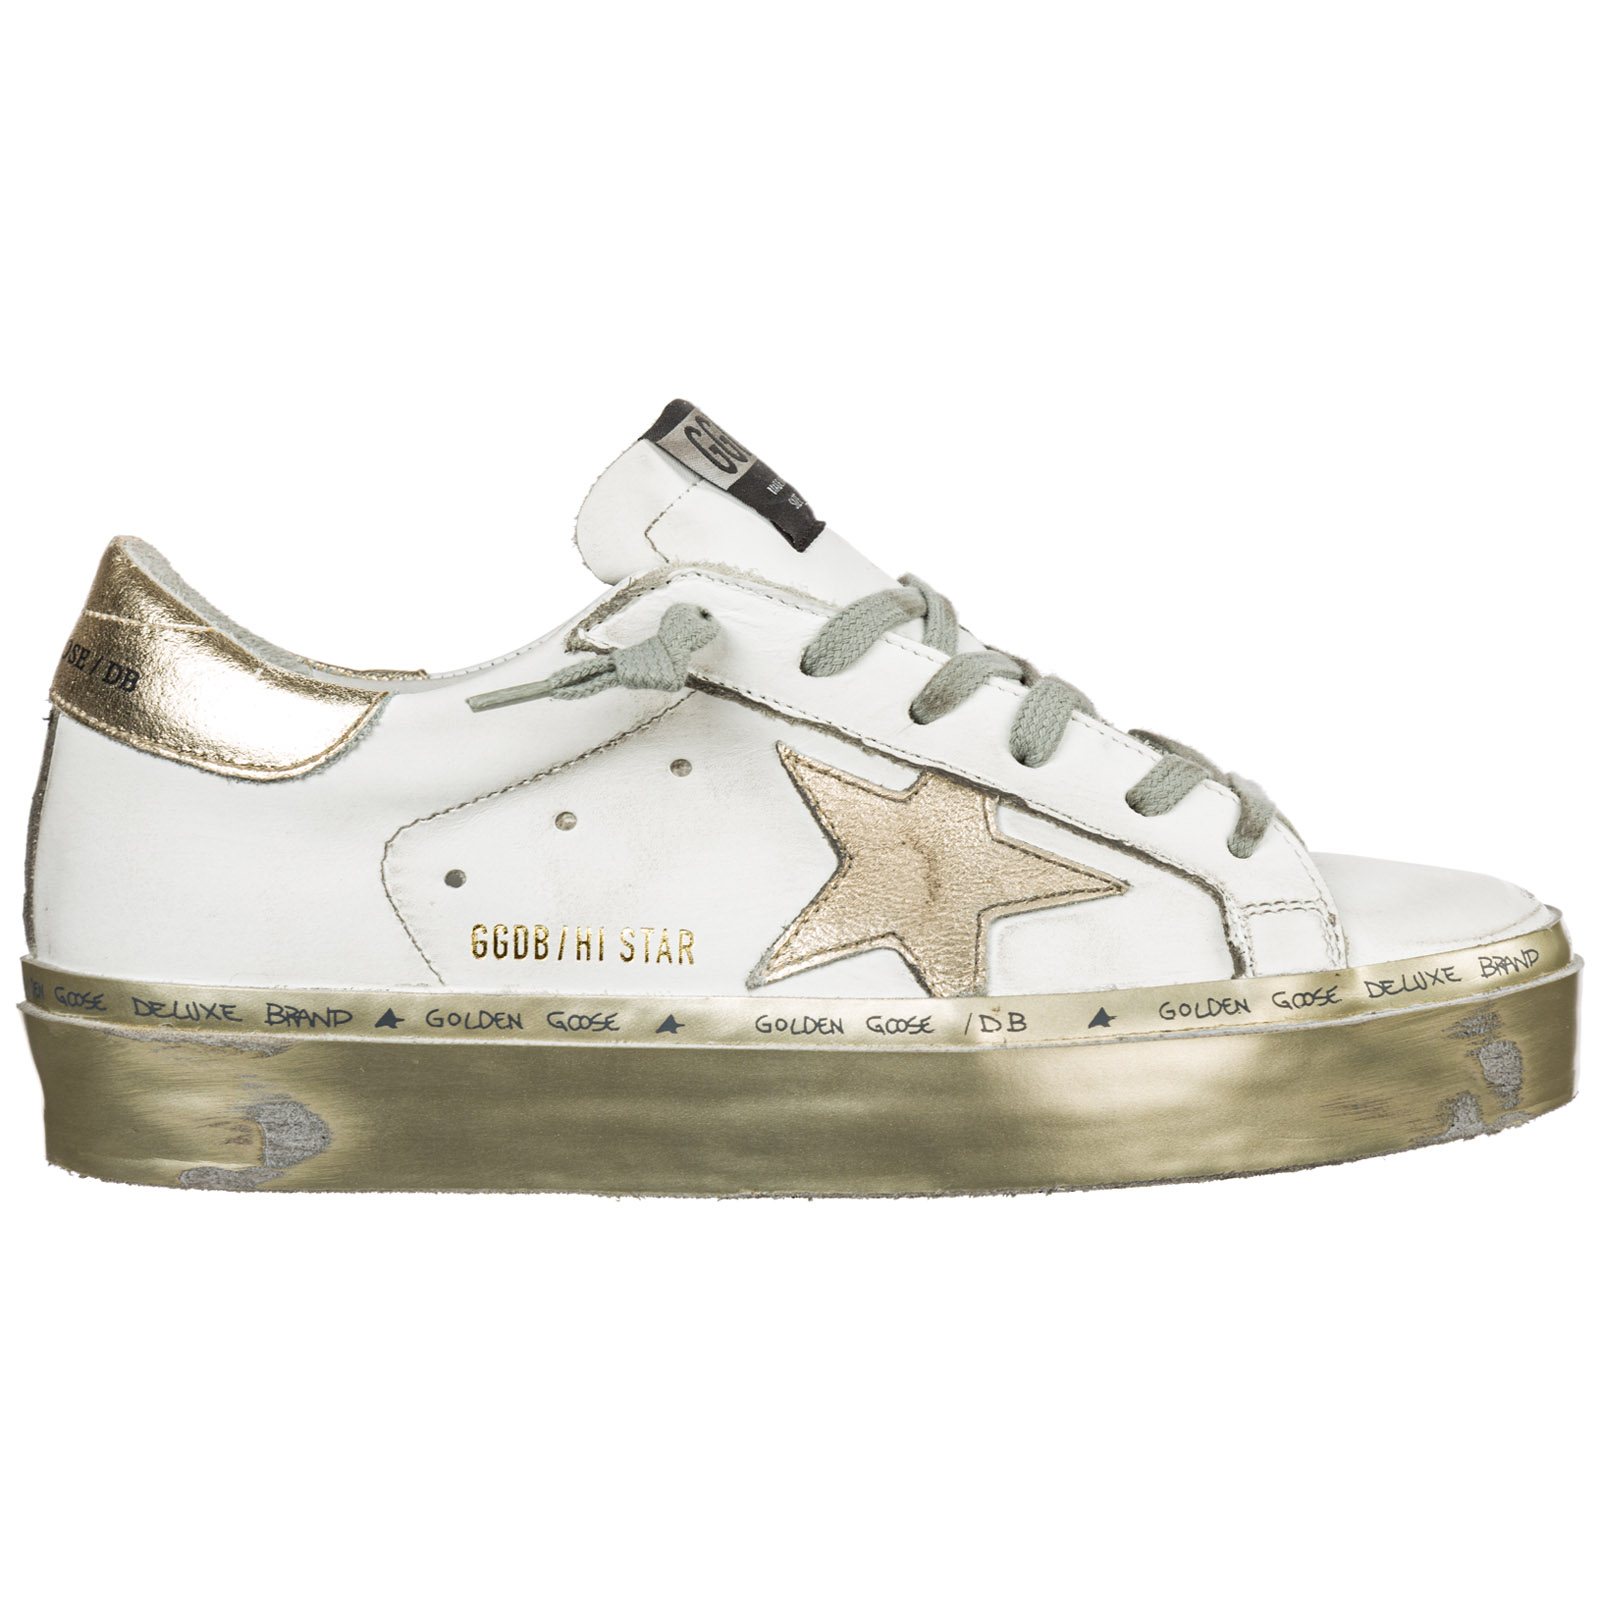 best service 77977 fd308 Women's shoes leather trainers sneakers hi star